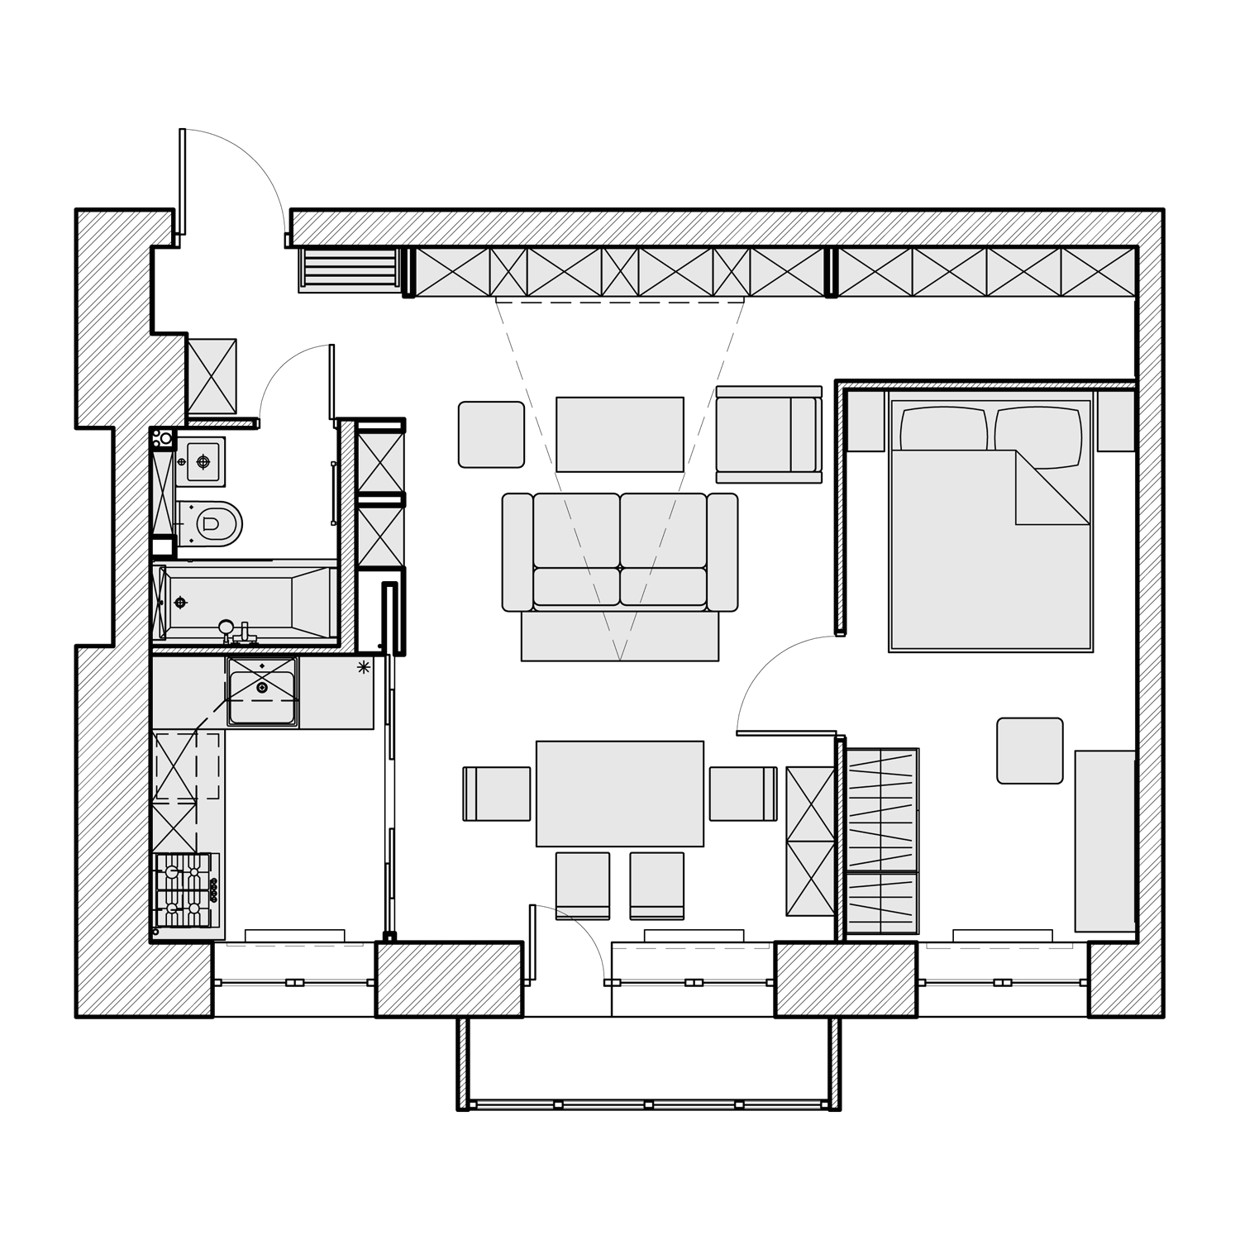 3 beautiful homes under 500 square feet floor plans included